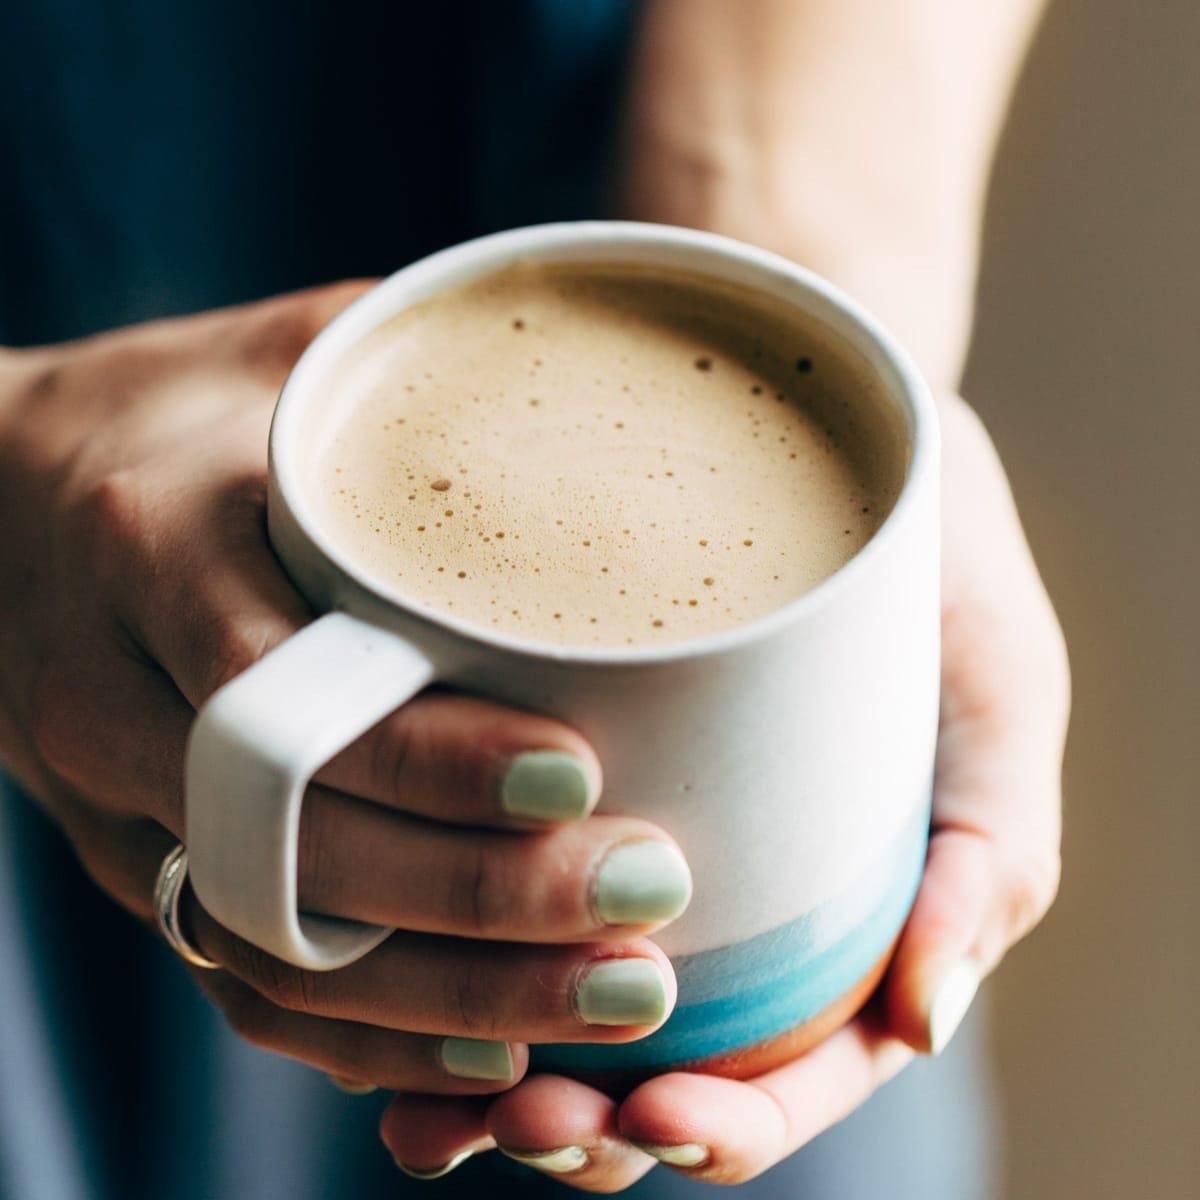 I have to share this here. Vegan friendly cashew coffee